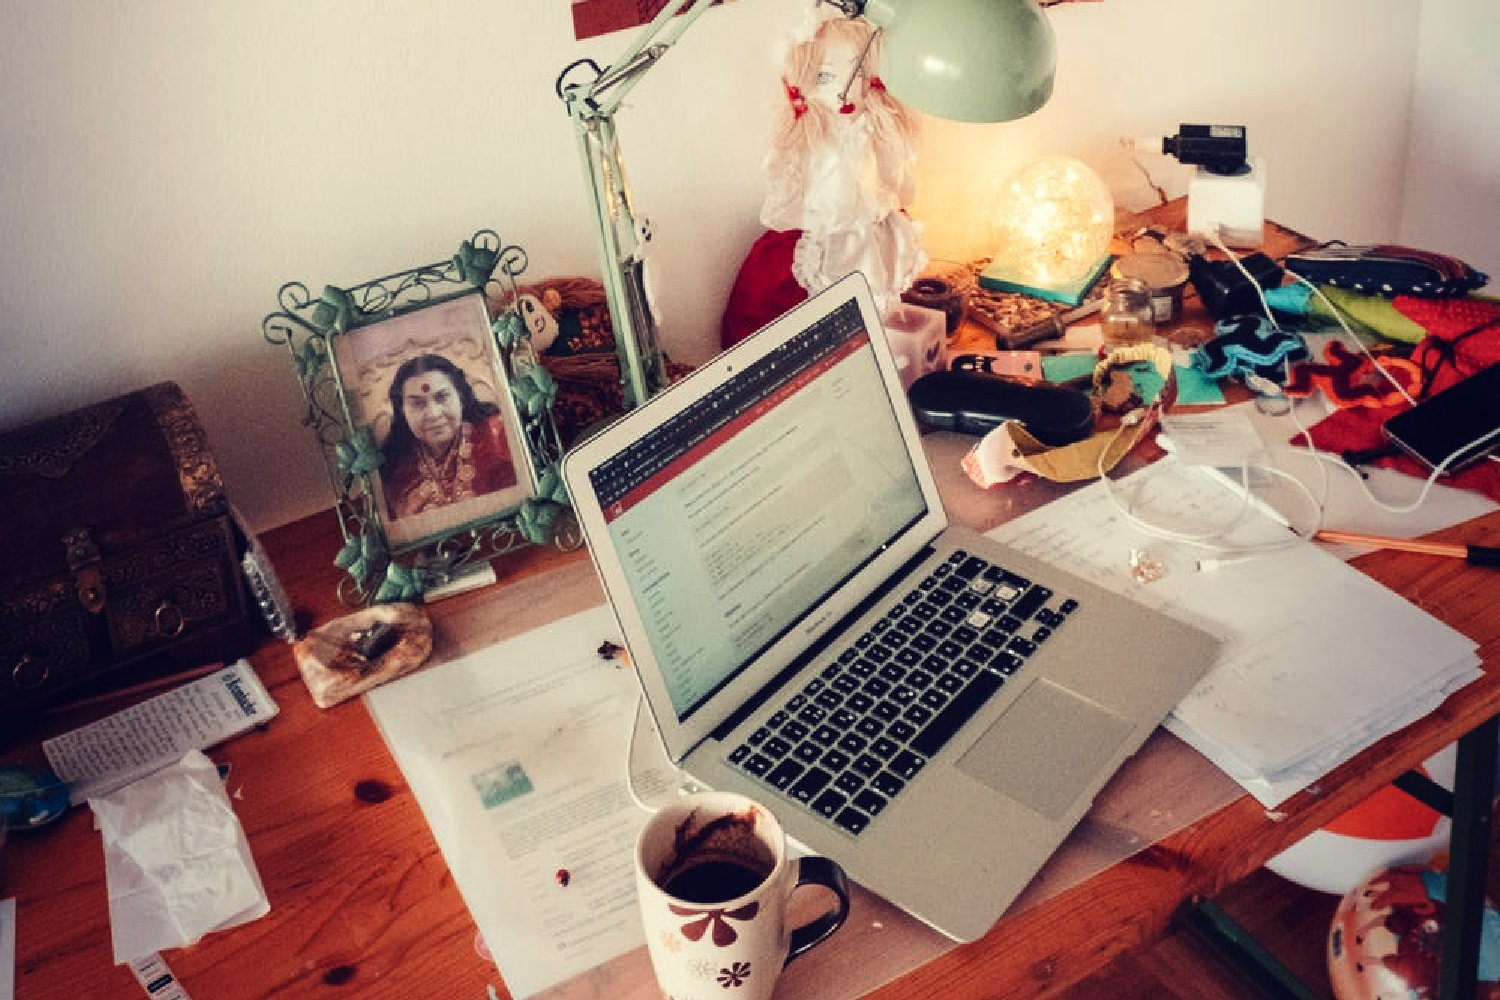 WORKING FROM HOME OR LIVING AT WORK?